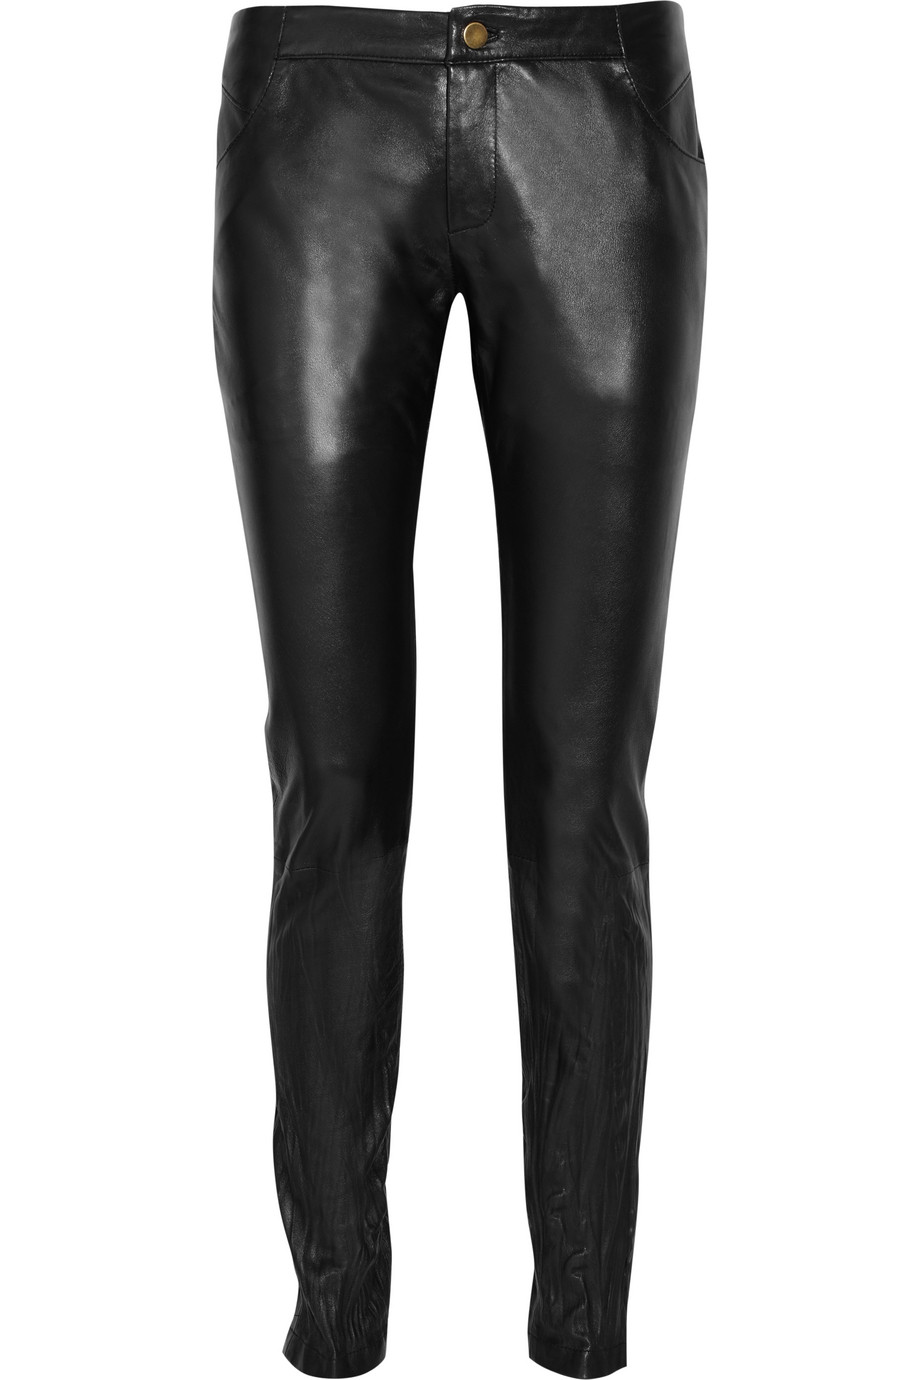 Miss Selfridge faux leather skinny trousers in black. £ Goosecraft leather trousers. £ Mamalicious over the bump faux leather leggings. £ ASOS DESIGN high waisted wet look leggings. £ River Island Petite Faux Leather High Rise Leggings. £